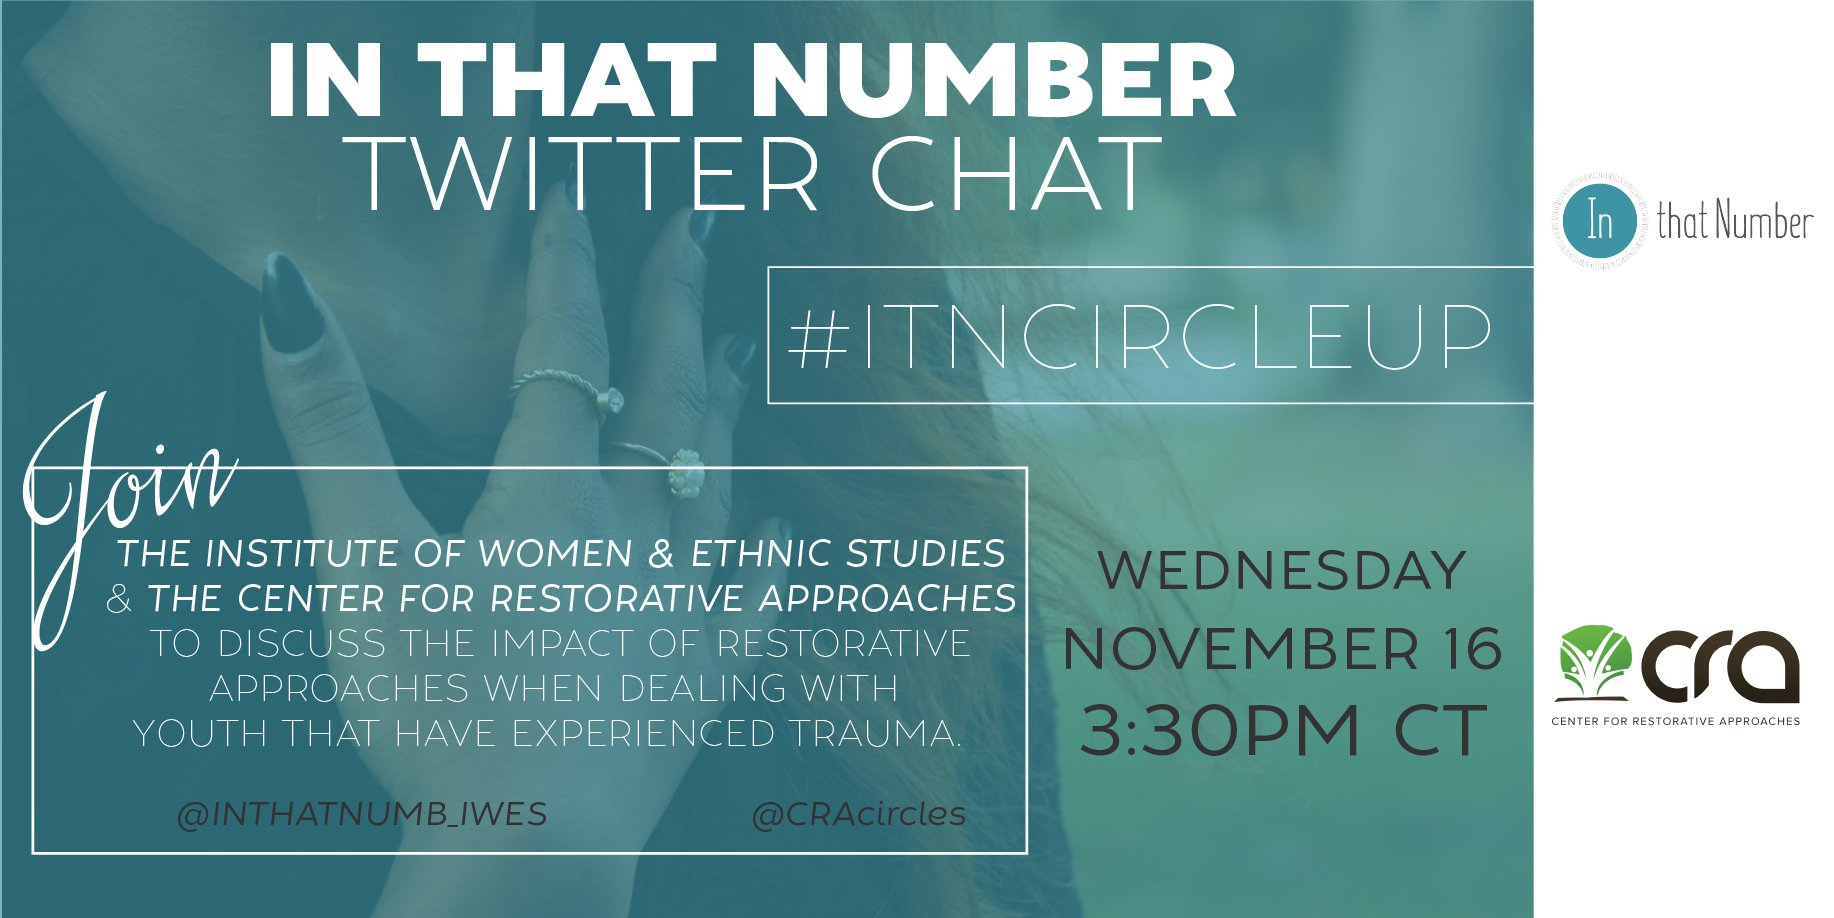 Just under 30 mins until our chat with @IWES_NOLA Use #ITNCircleUp to join in! https://t.co/62wrZ5I1NO